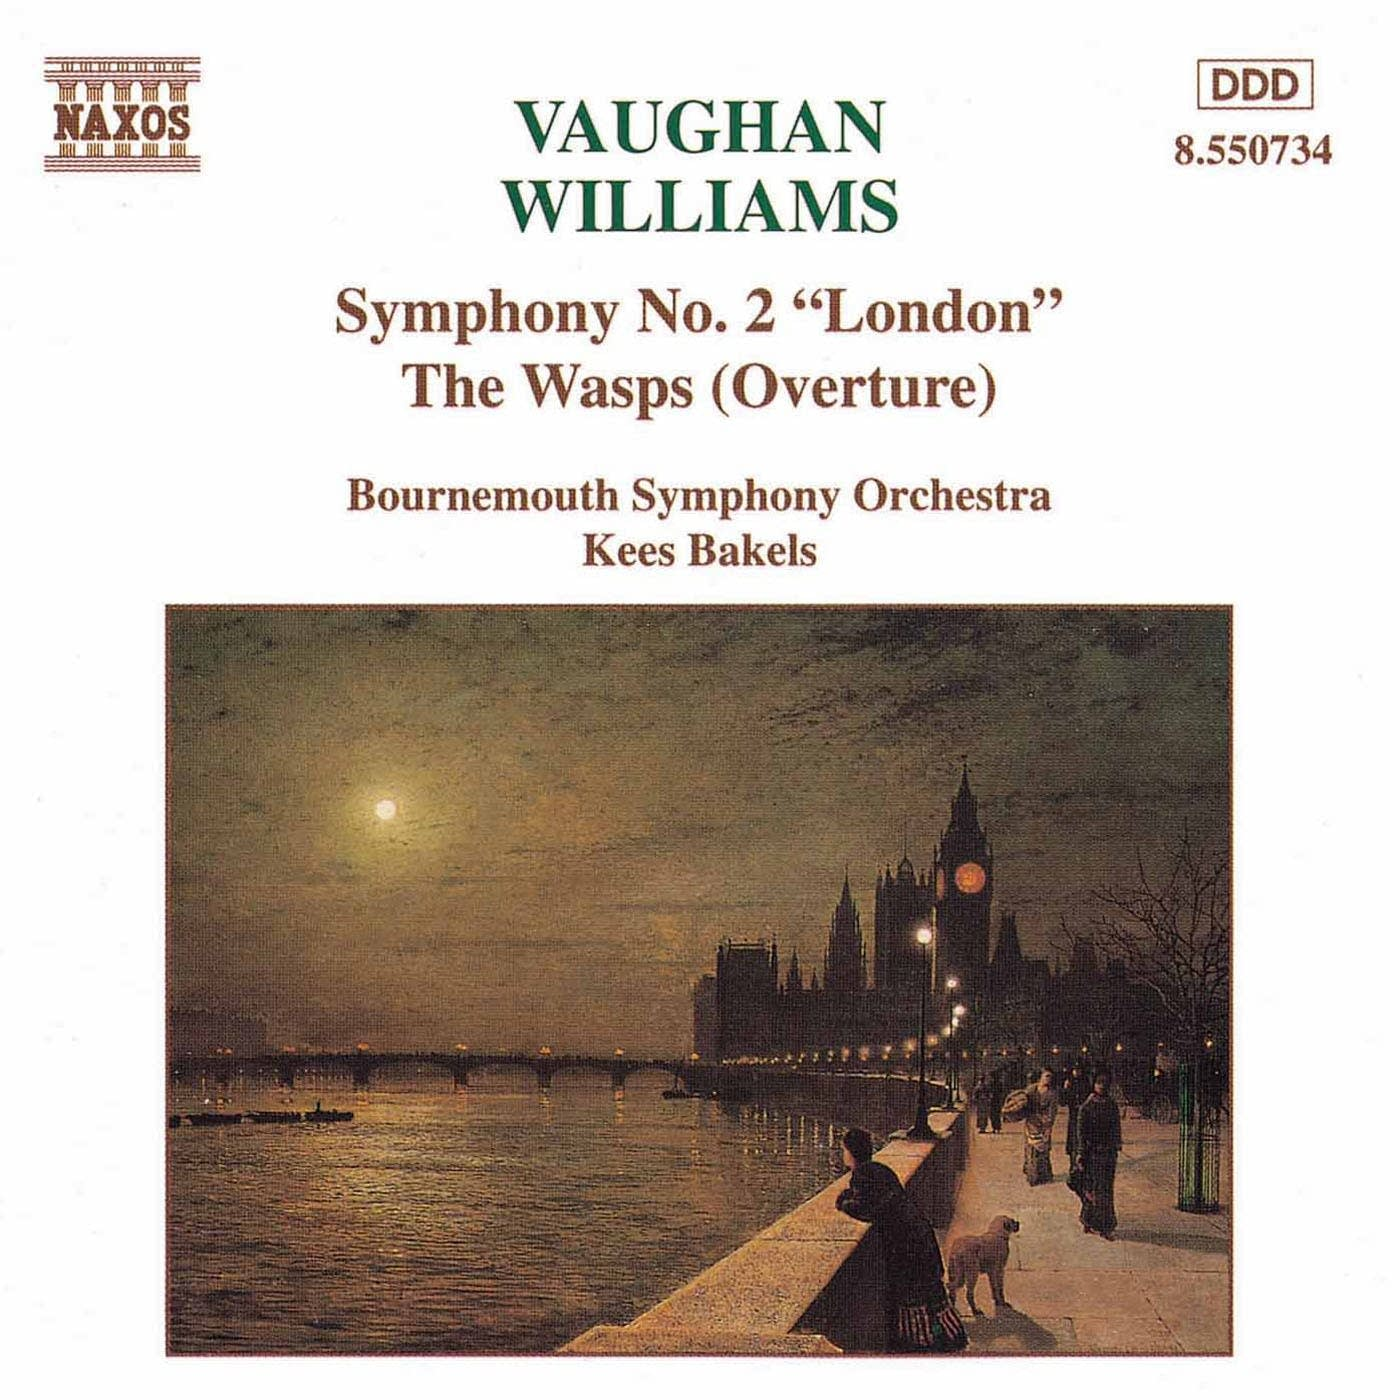 Ralph Vaughan Williams - The Wasps Overture